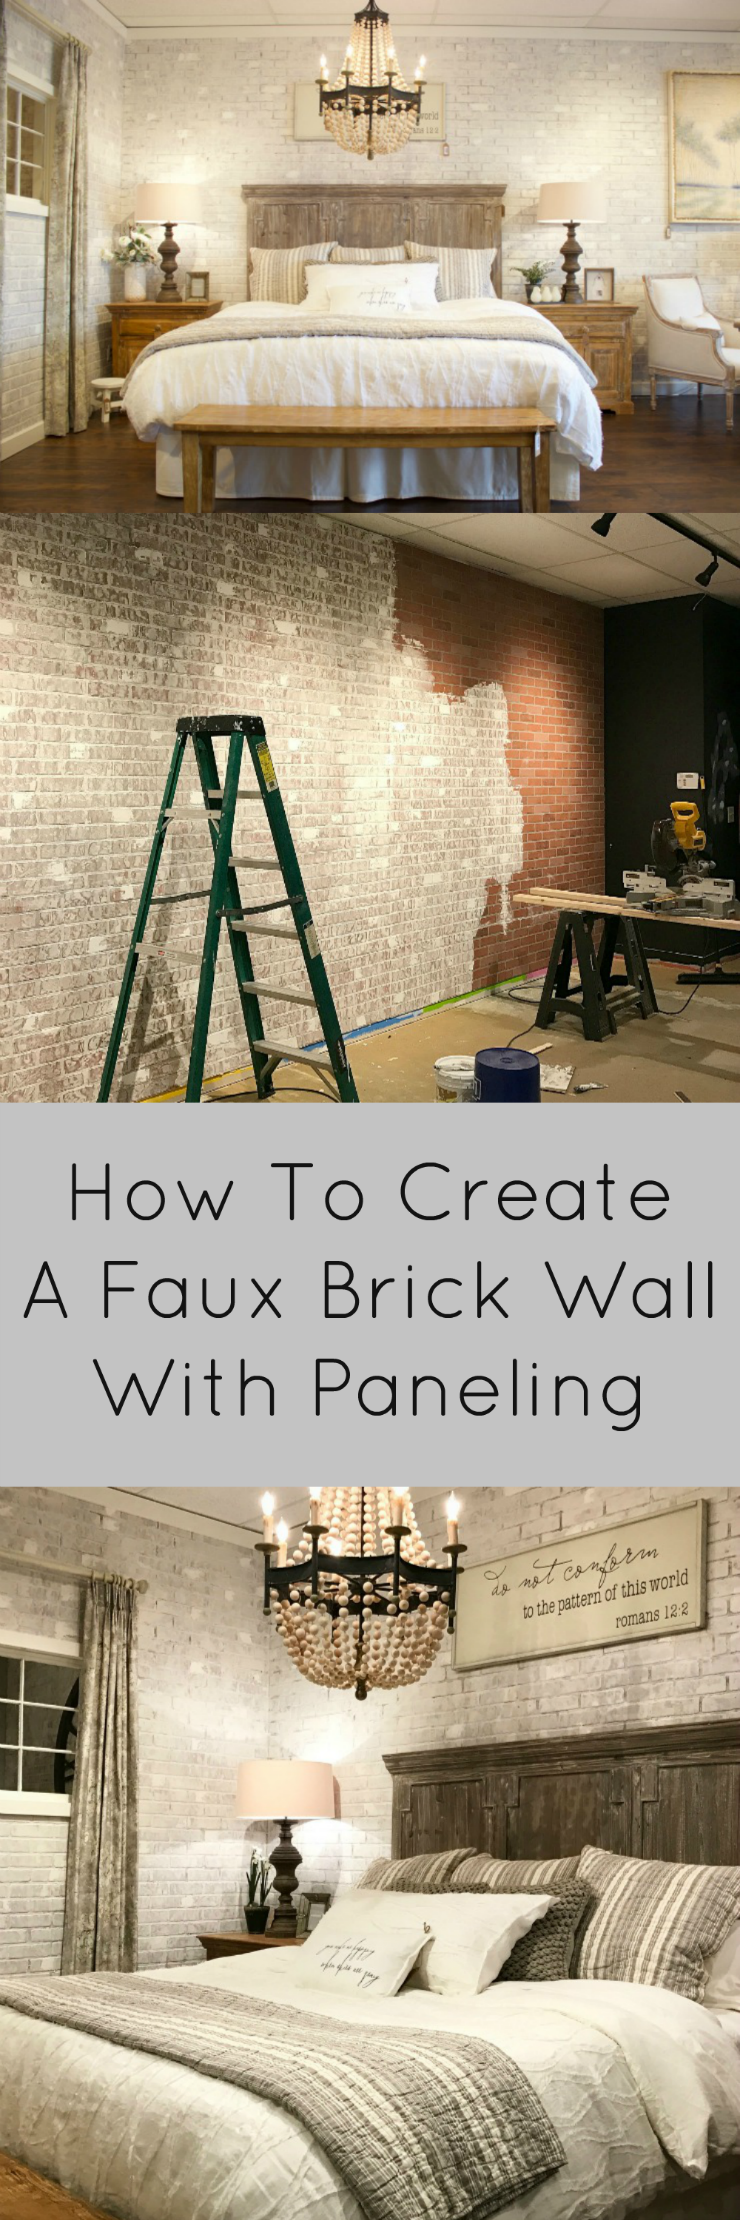 Get the look of exposed brick in your home with this easy DIY project to turn paneling into a beautiful, faux brick wall! Includes video tutorial.